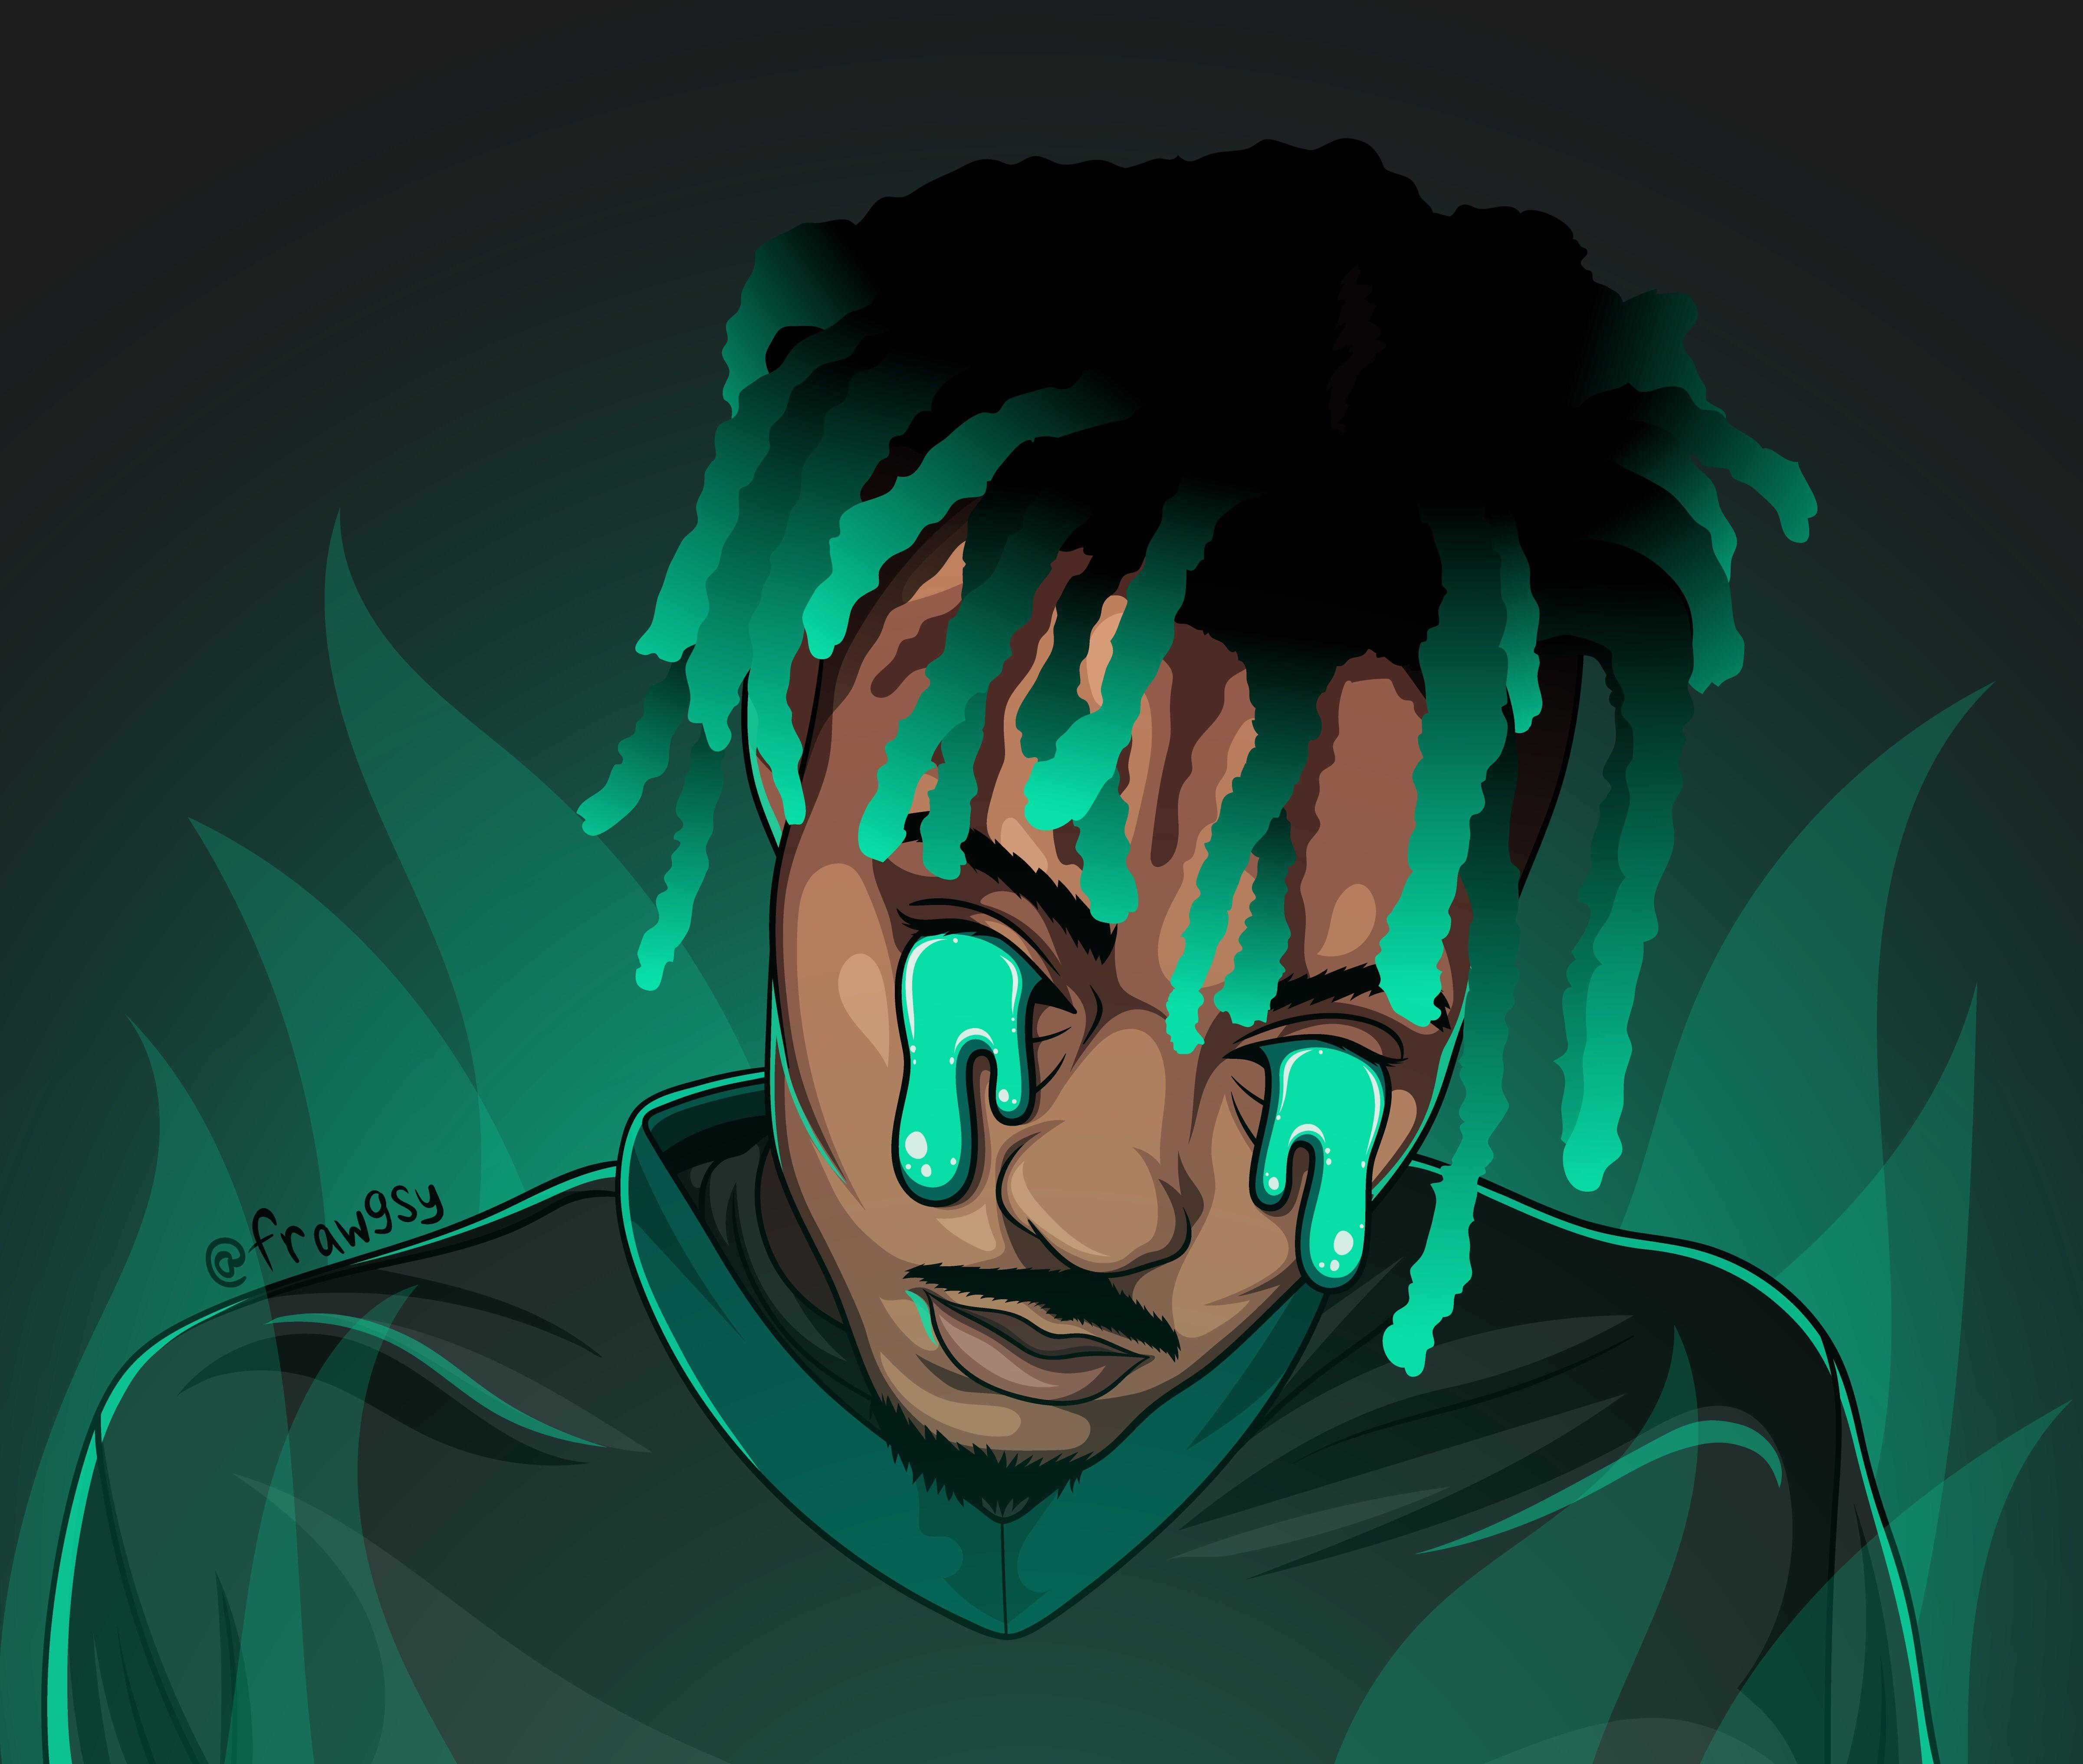 Animated Juice Wrld Wallpapers Top Free Animated Juice Wrld Backgrounds Wallpaperaccess